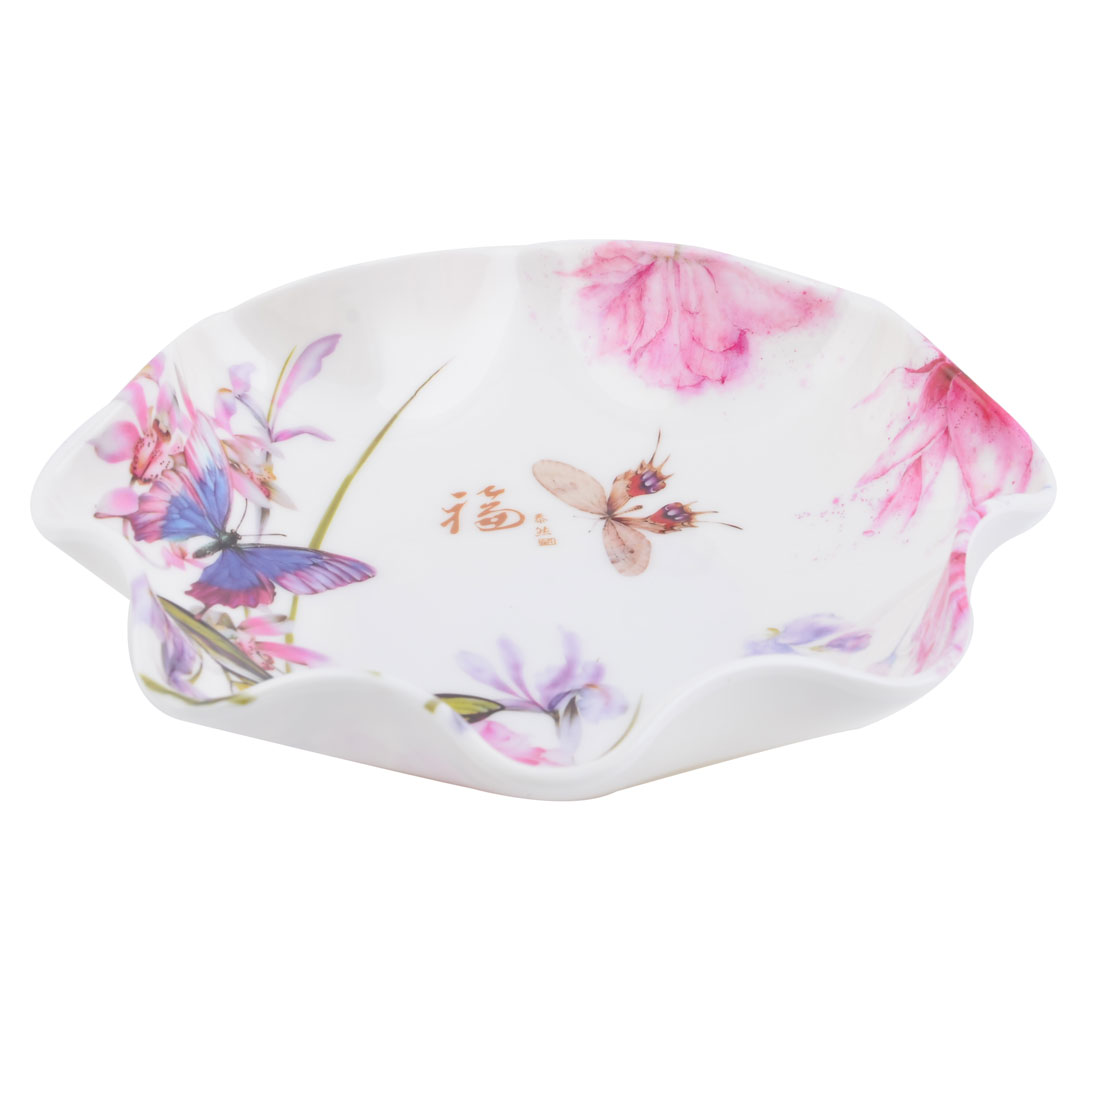 Household Kitchen Plastic Butterfly Pattern Peach Banana Fruit Candy Snack Plate